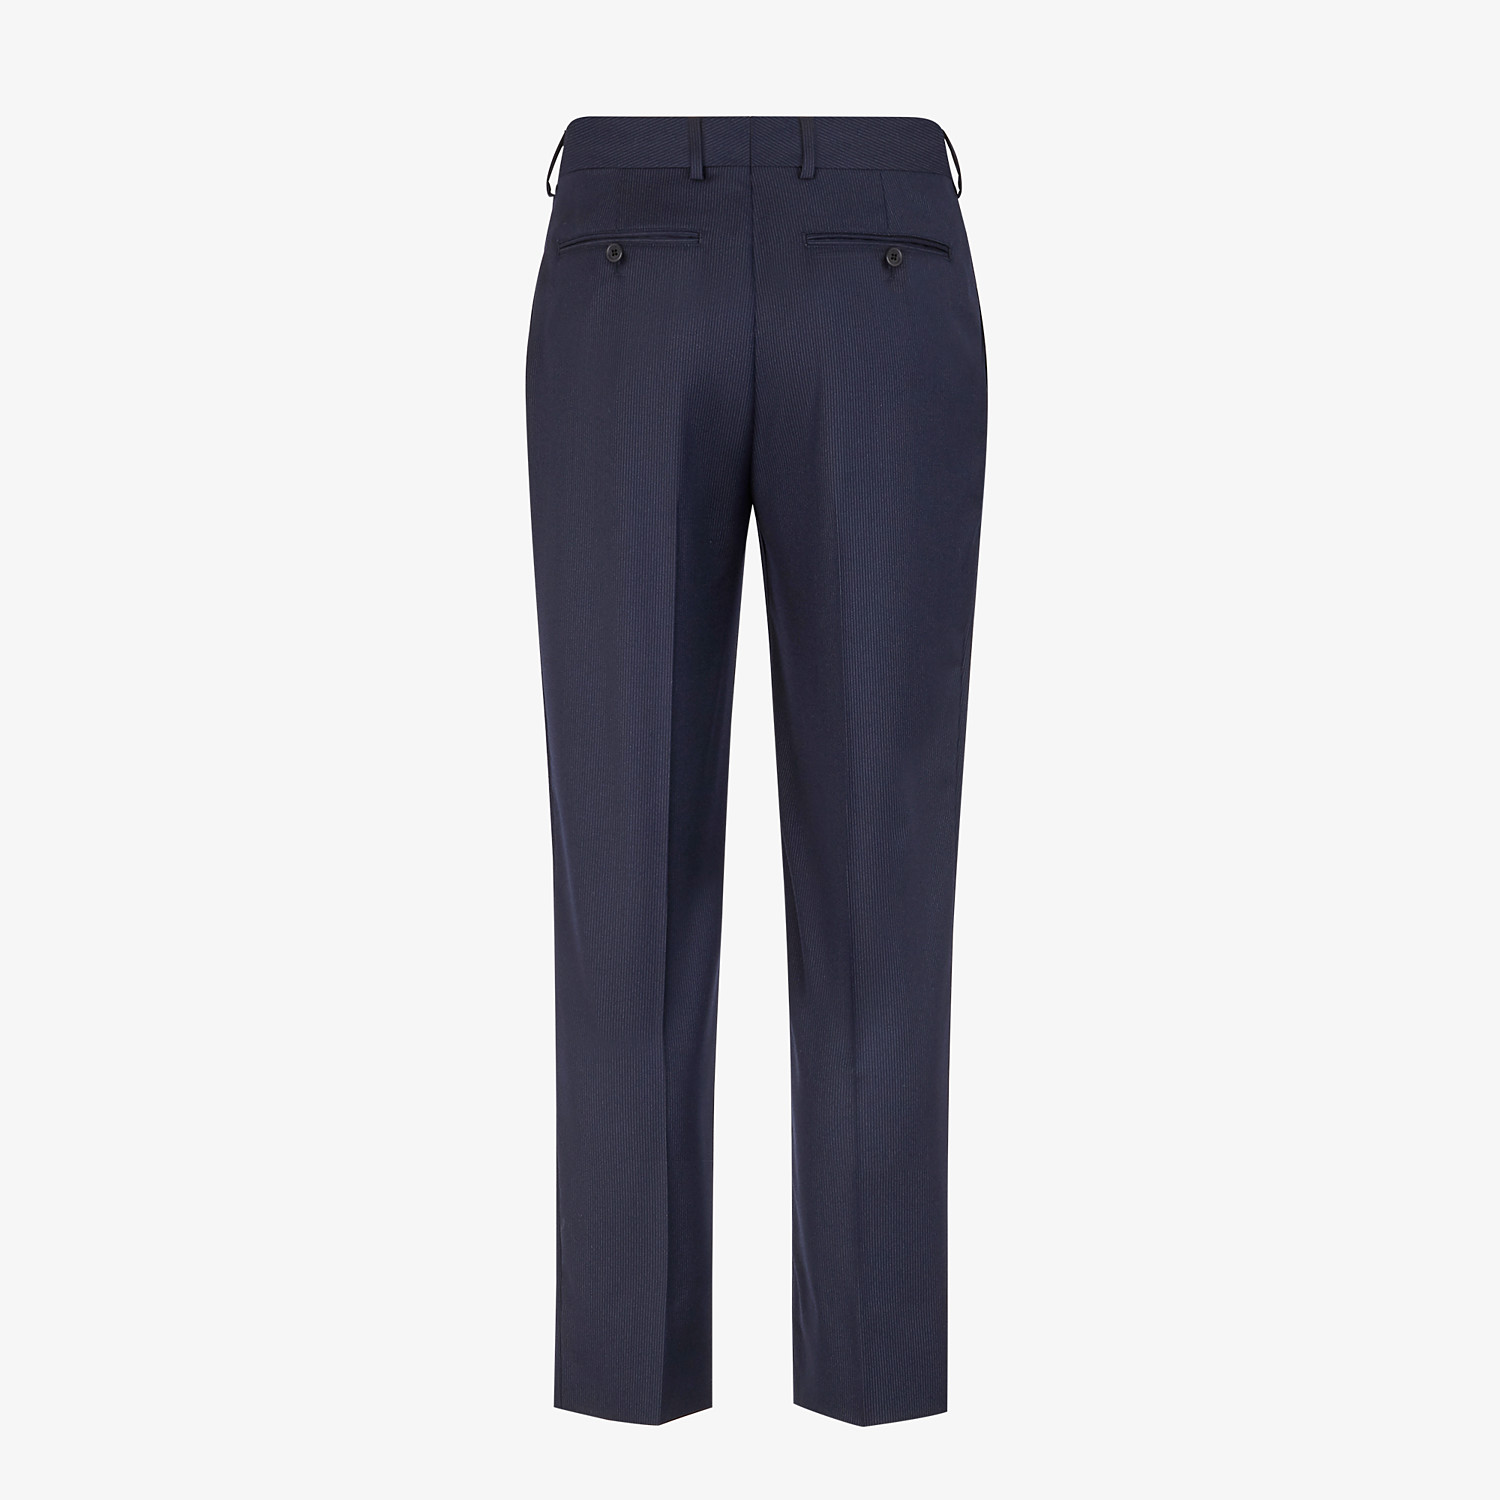 FENDI TROUSERS - Multicolour wool and silk trousers - view 2 detail